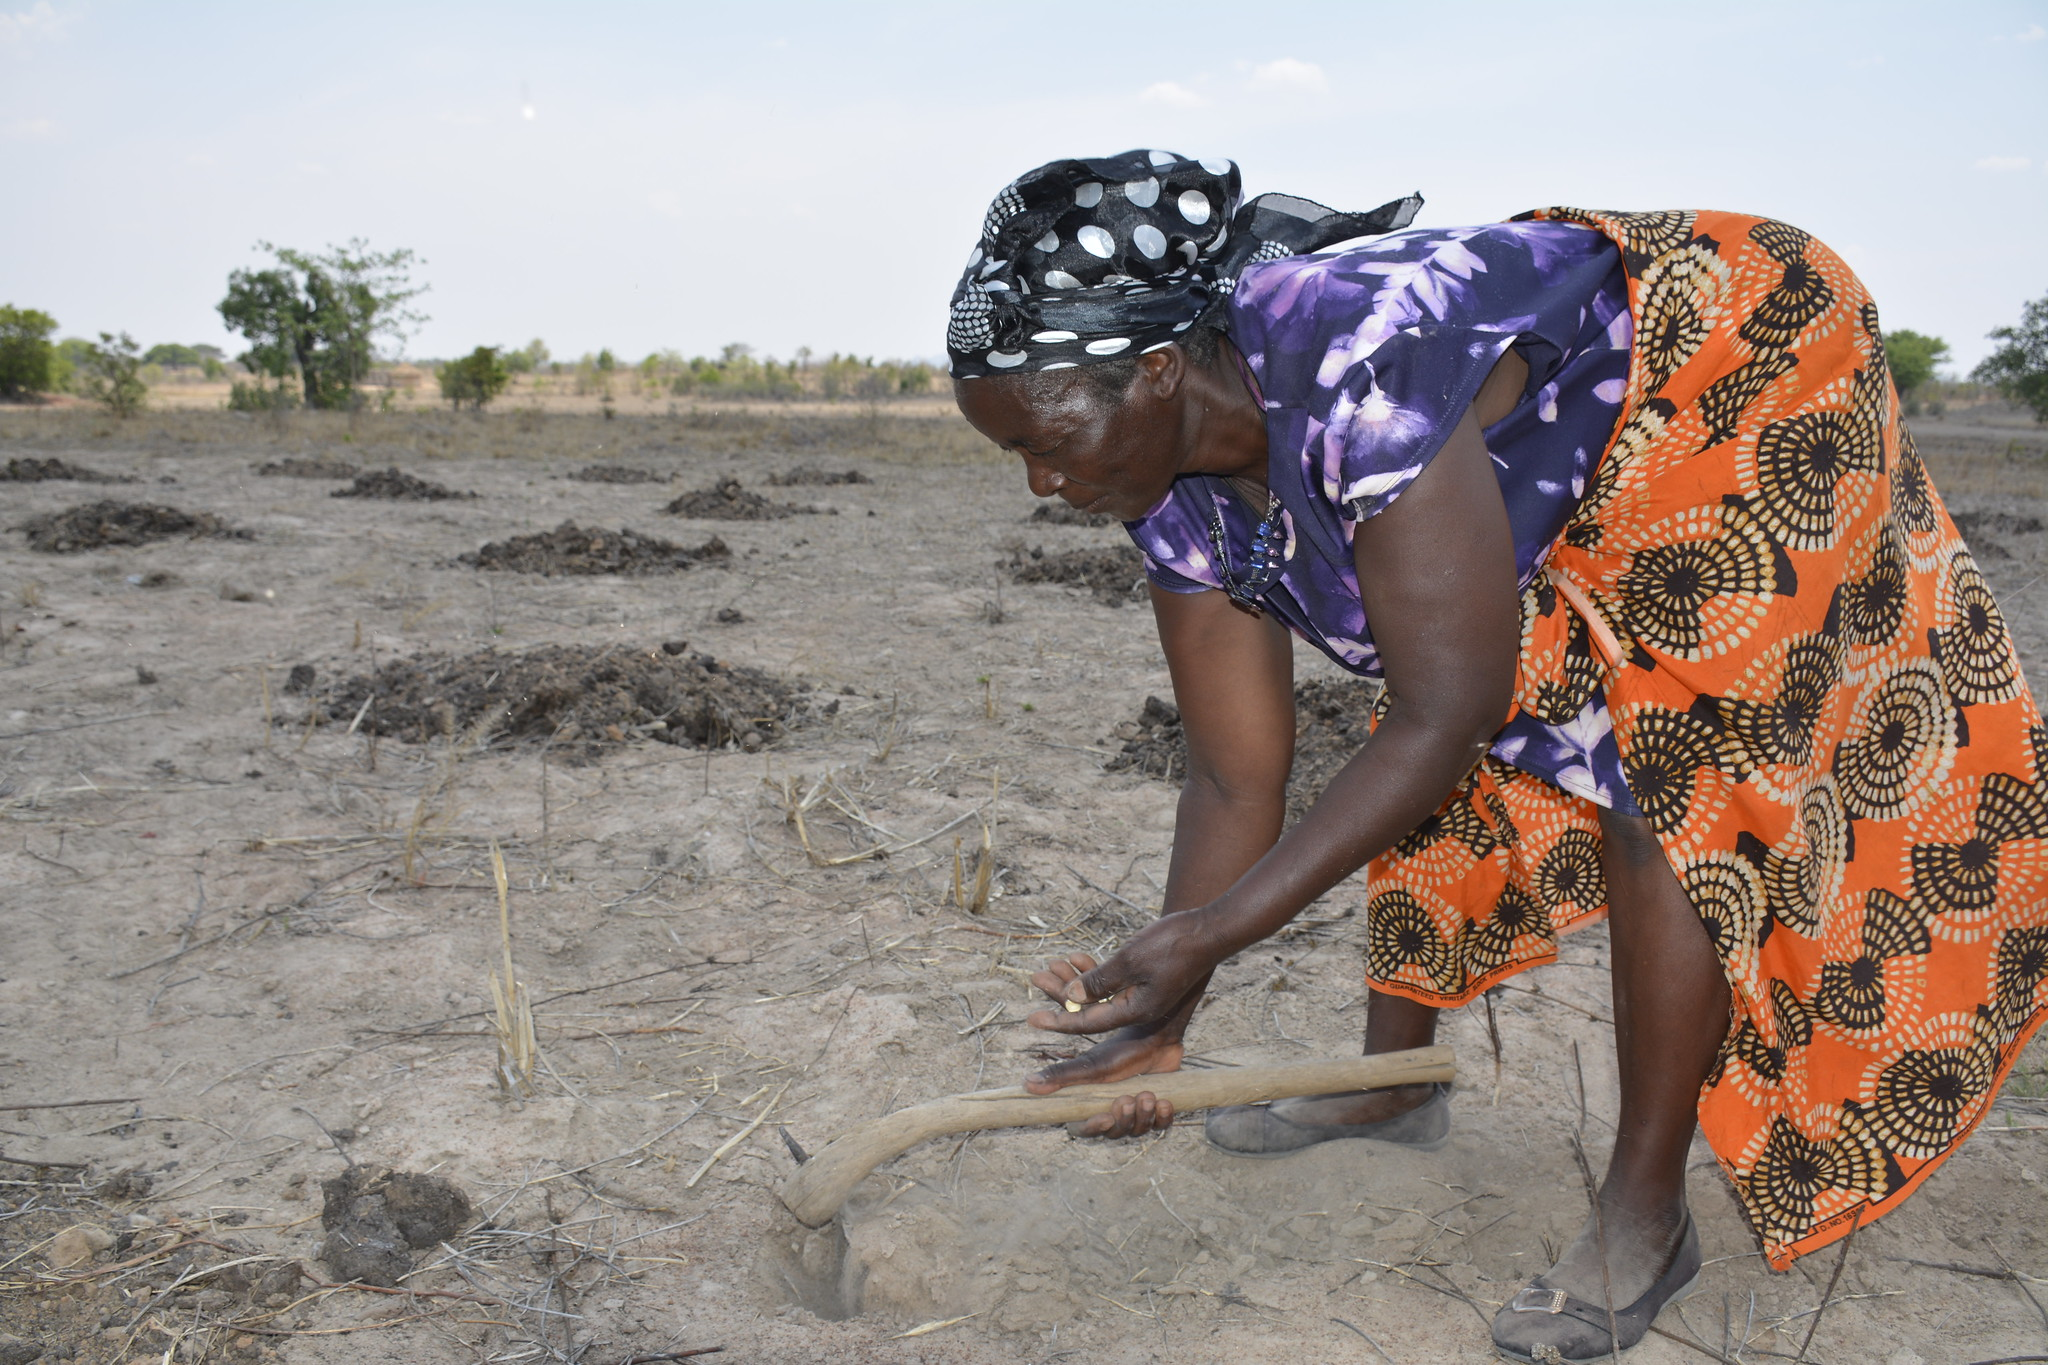 MEDIA REPORT: To manage El Nino-related crop distress in eastern and southern Africa, invest in drought-tolerant seeds and better soil and water care